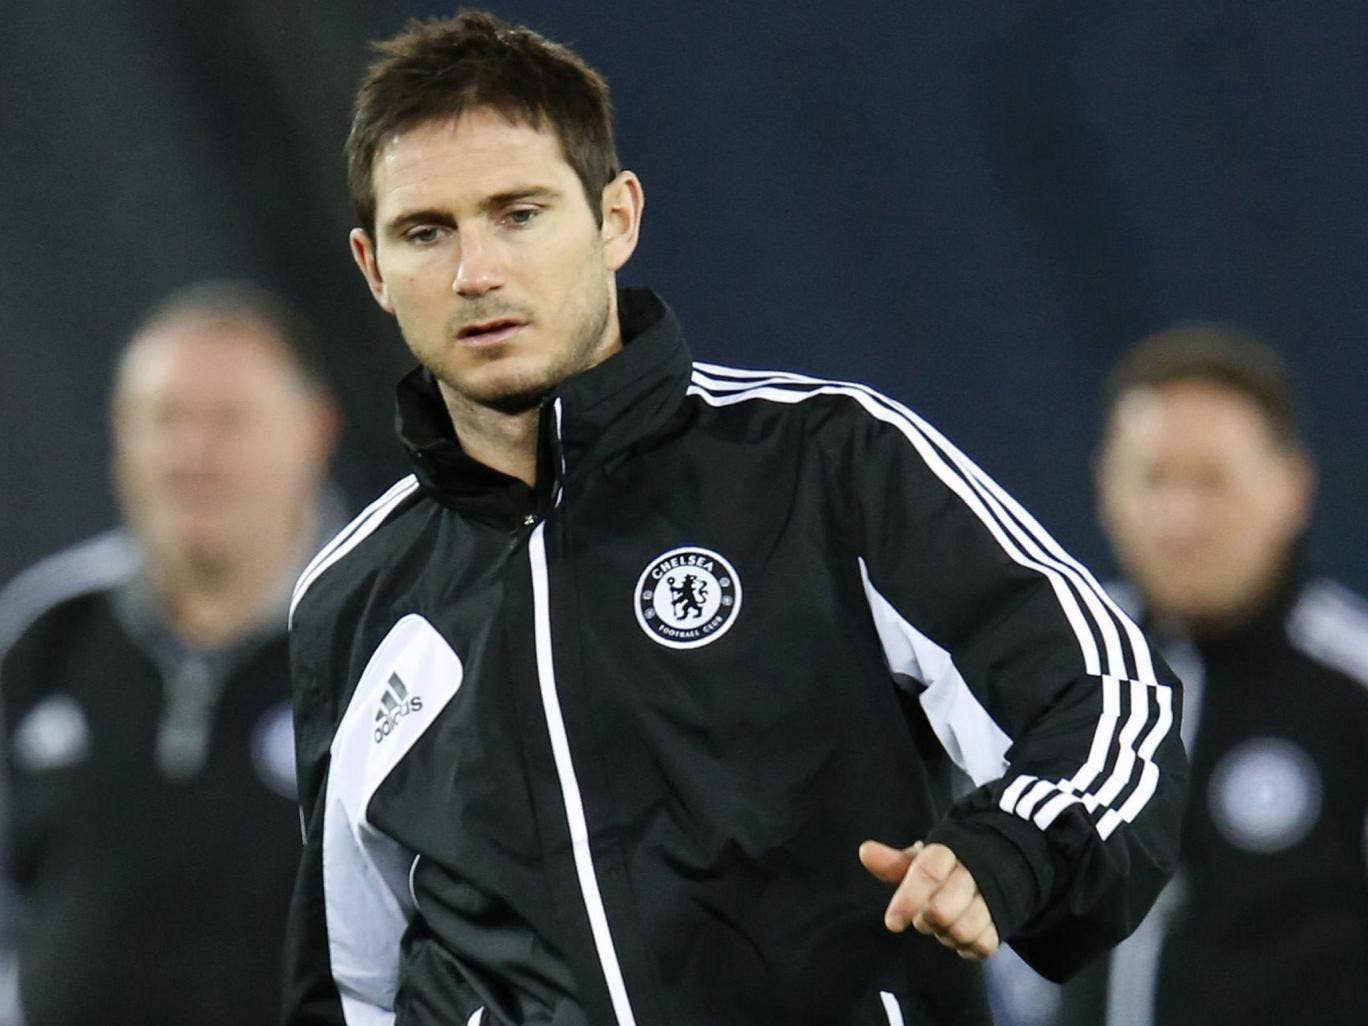 Frank Lampard: The England midfielder has only six months left on his deal at Chelsea